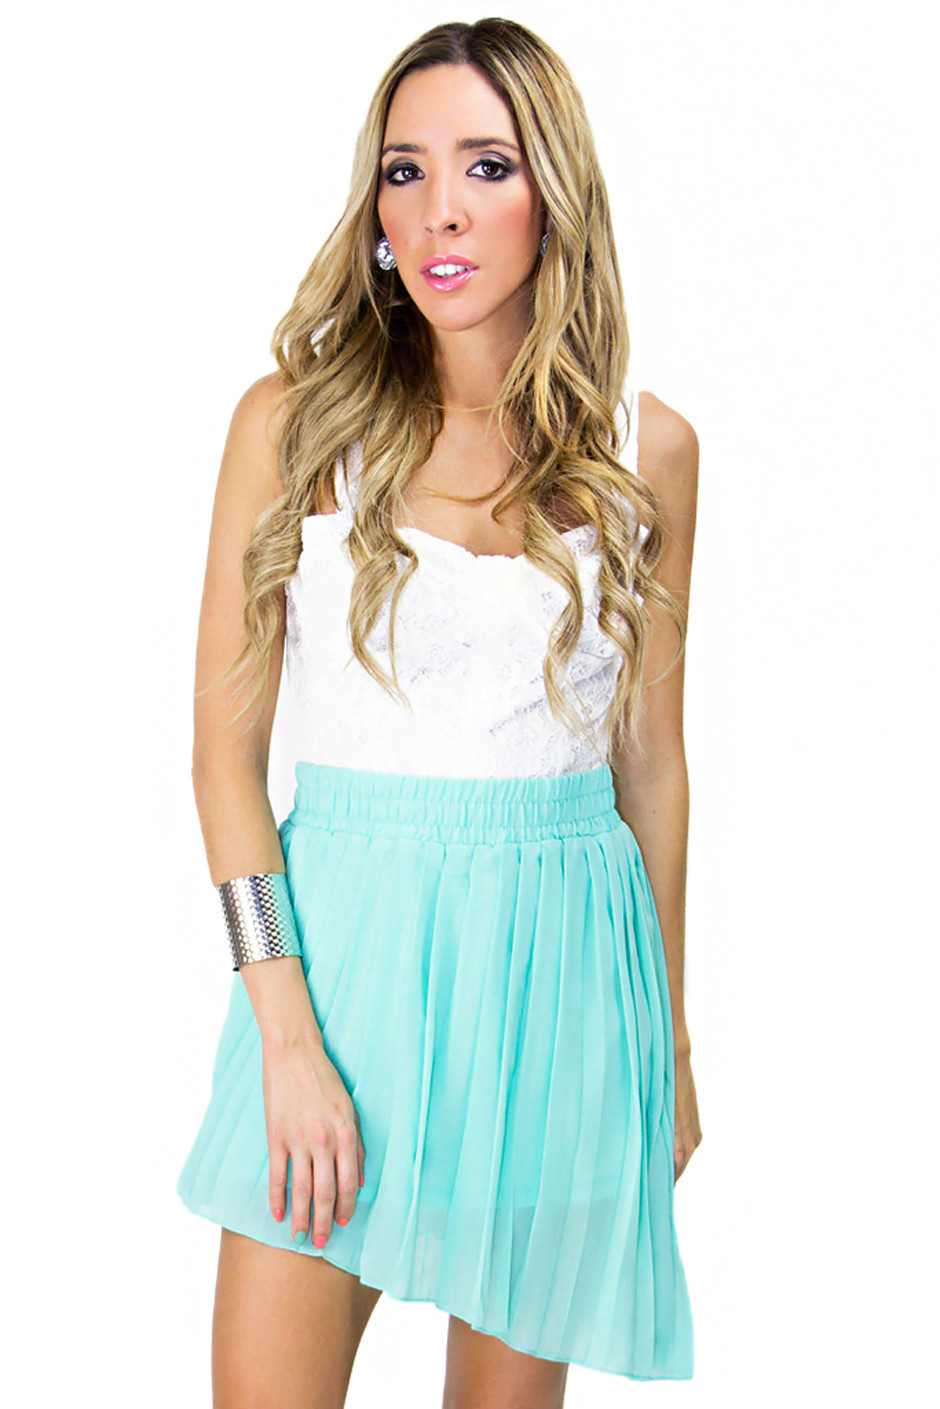 PLEATED HIGH-LOW SKIRT - Turquoise | Haute & Rebellious